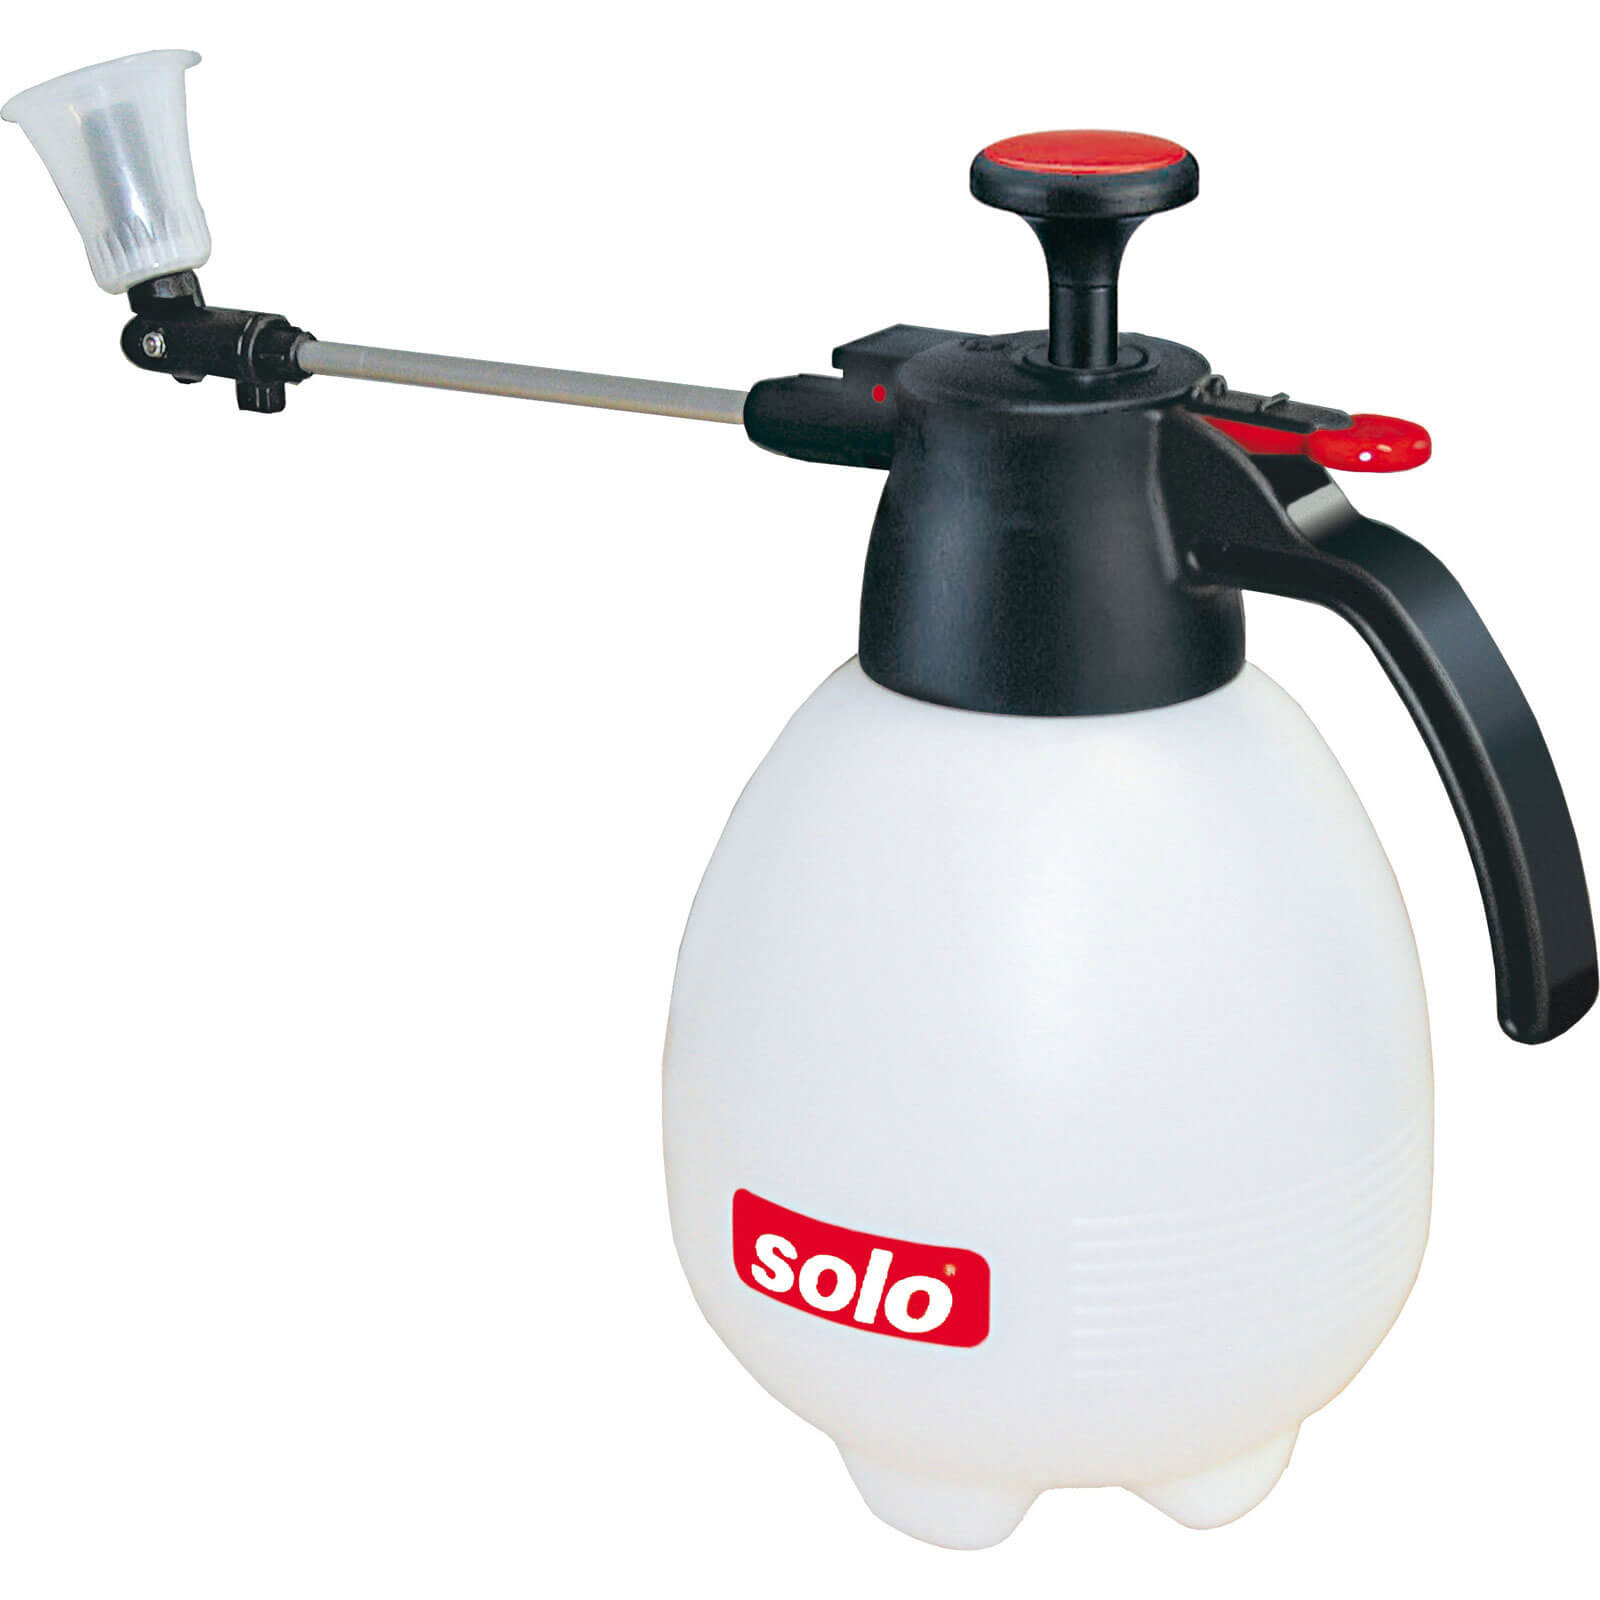 Image of Solo 402 COMFORT Chemical and Water Pressure Sprayer 2l